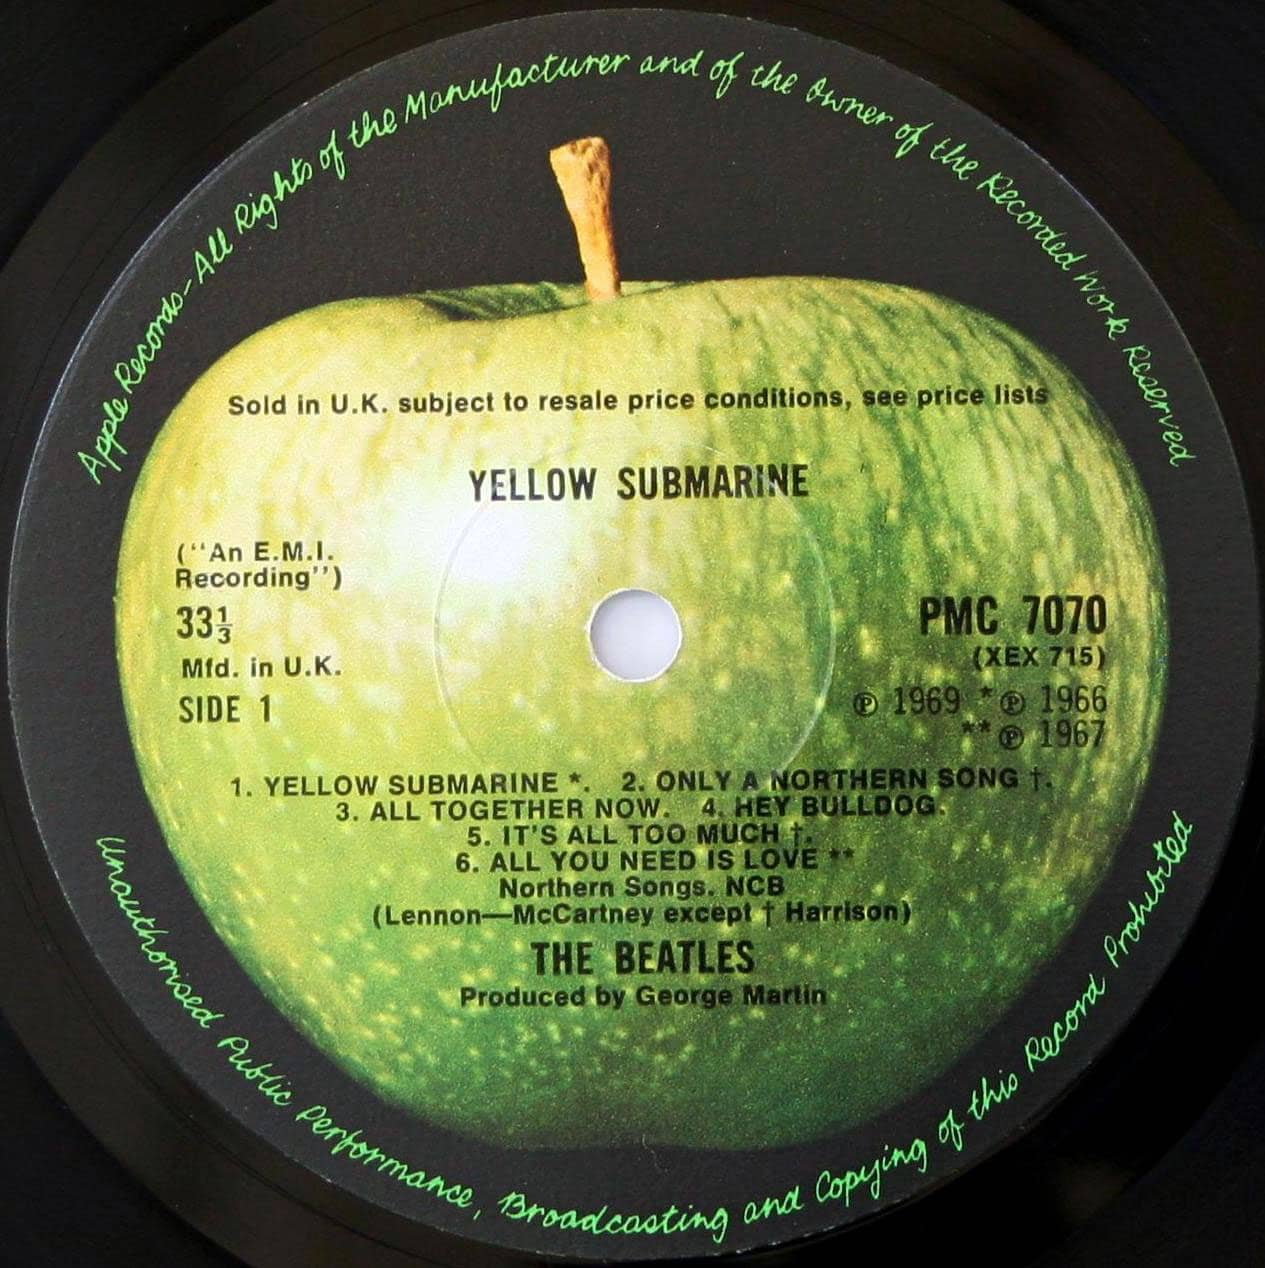 25 May 1967 Recording It S All Too Much The Beatles Bible